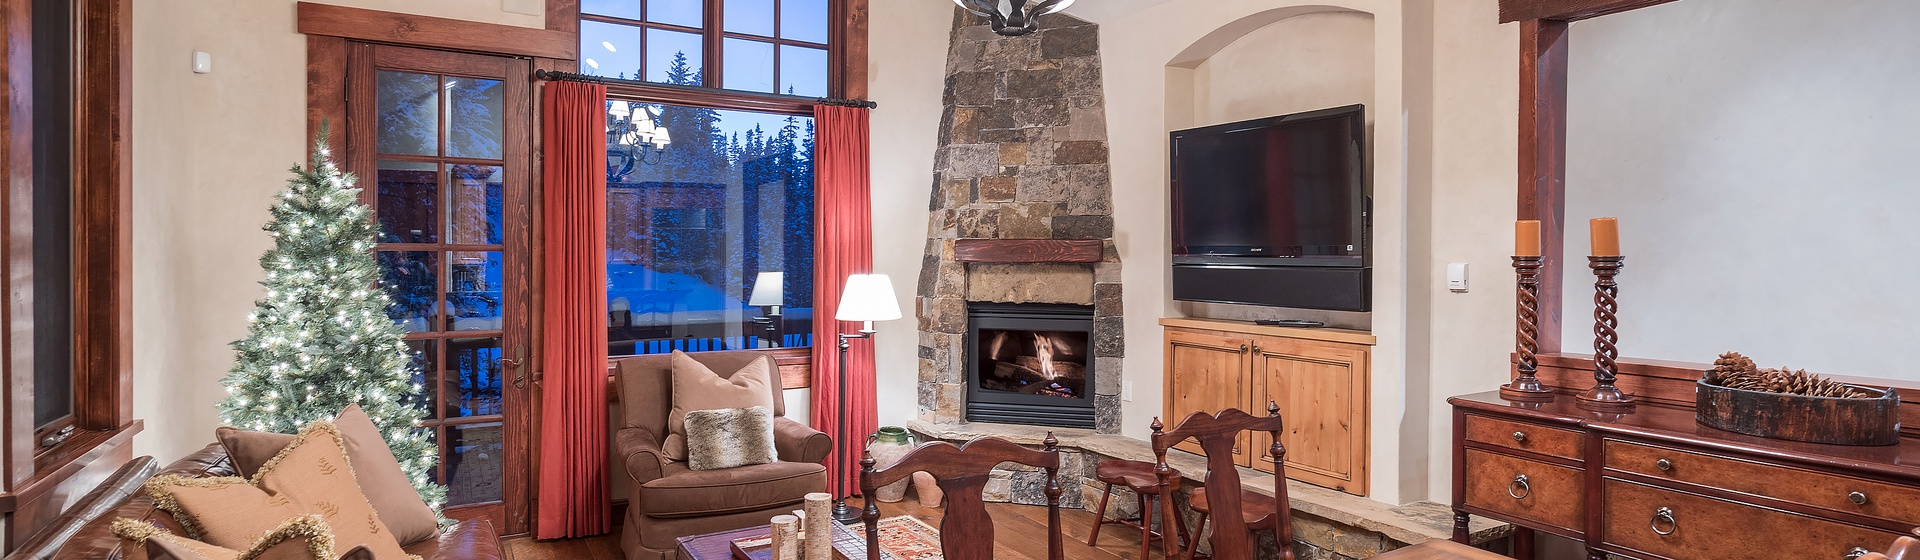 58-Telluride-Autumn-Ridge-Sitting-Room.JPG